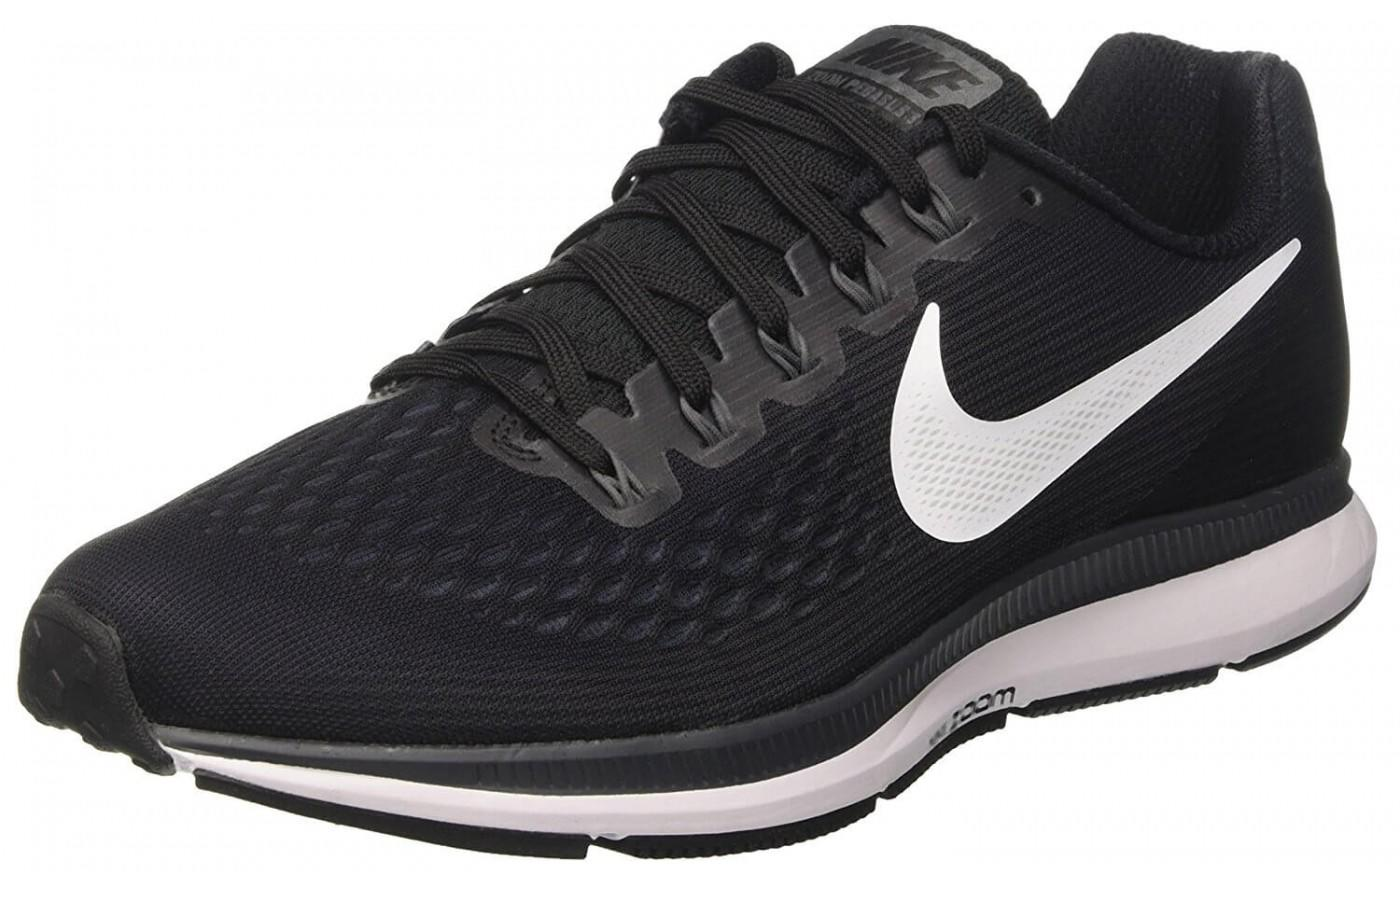 7b44a7b7df3a8 the upper of the Nike Air Zoom Pegasus 34 is made of breathable Flymesh ...